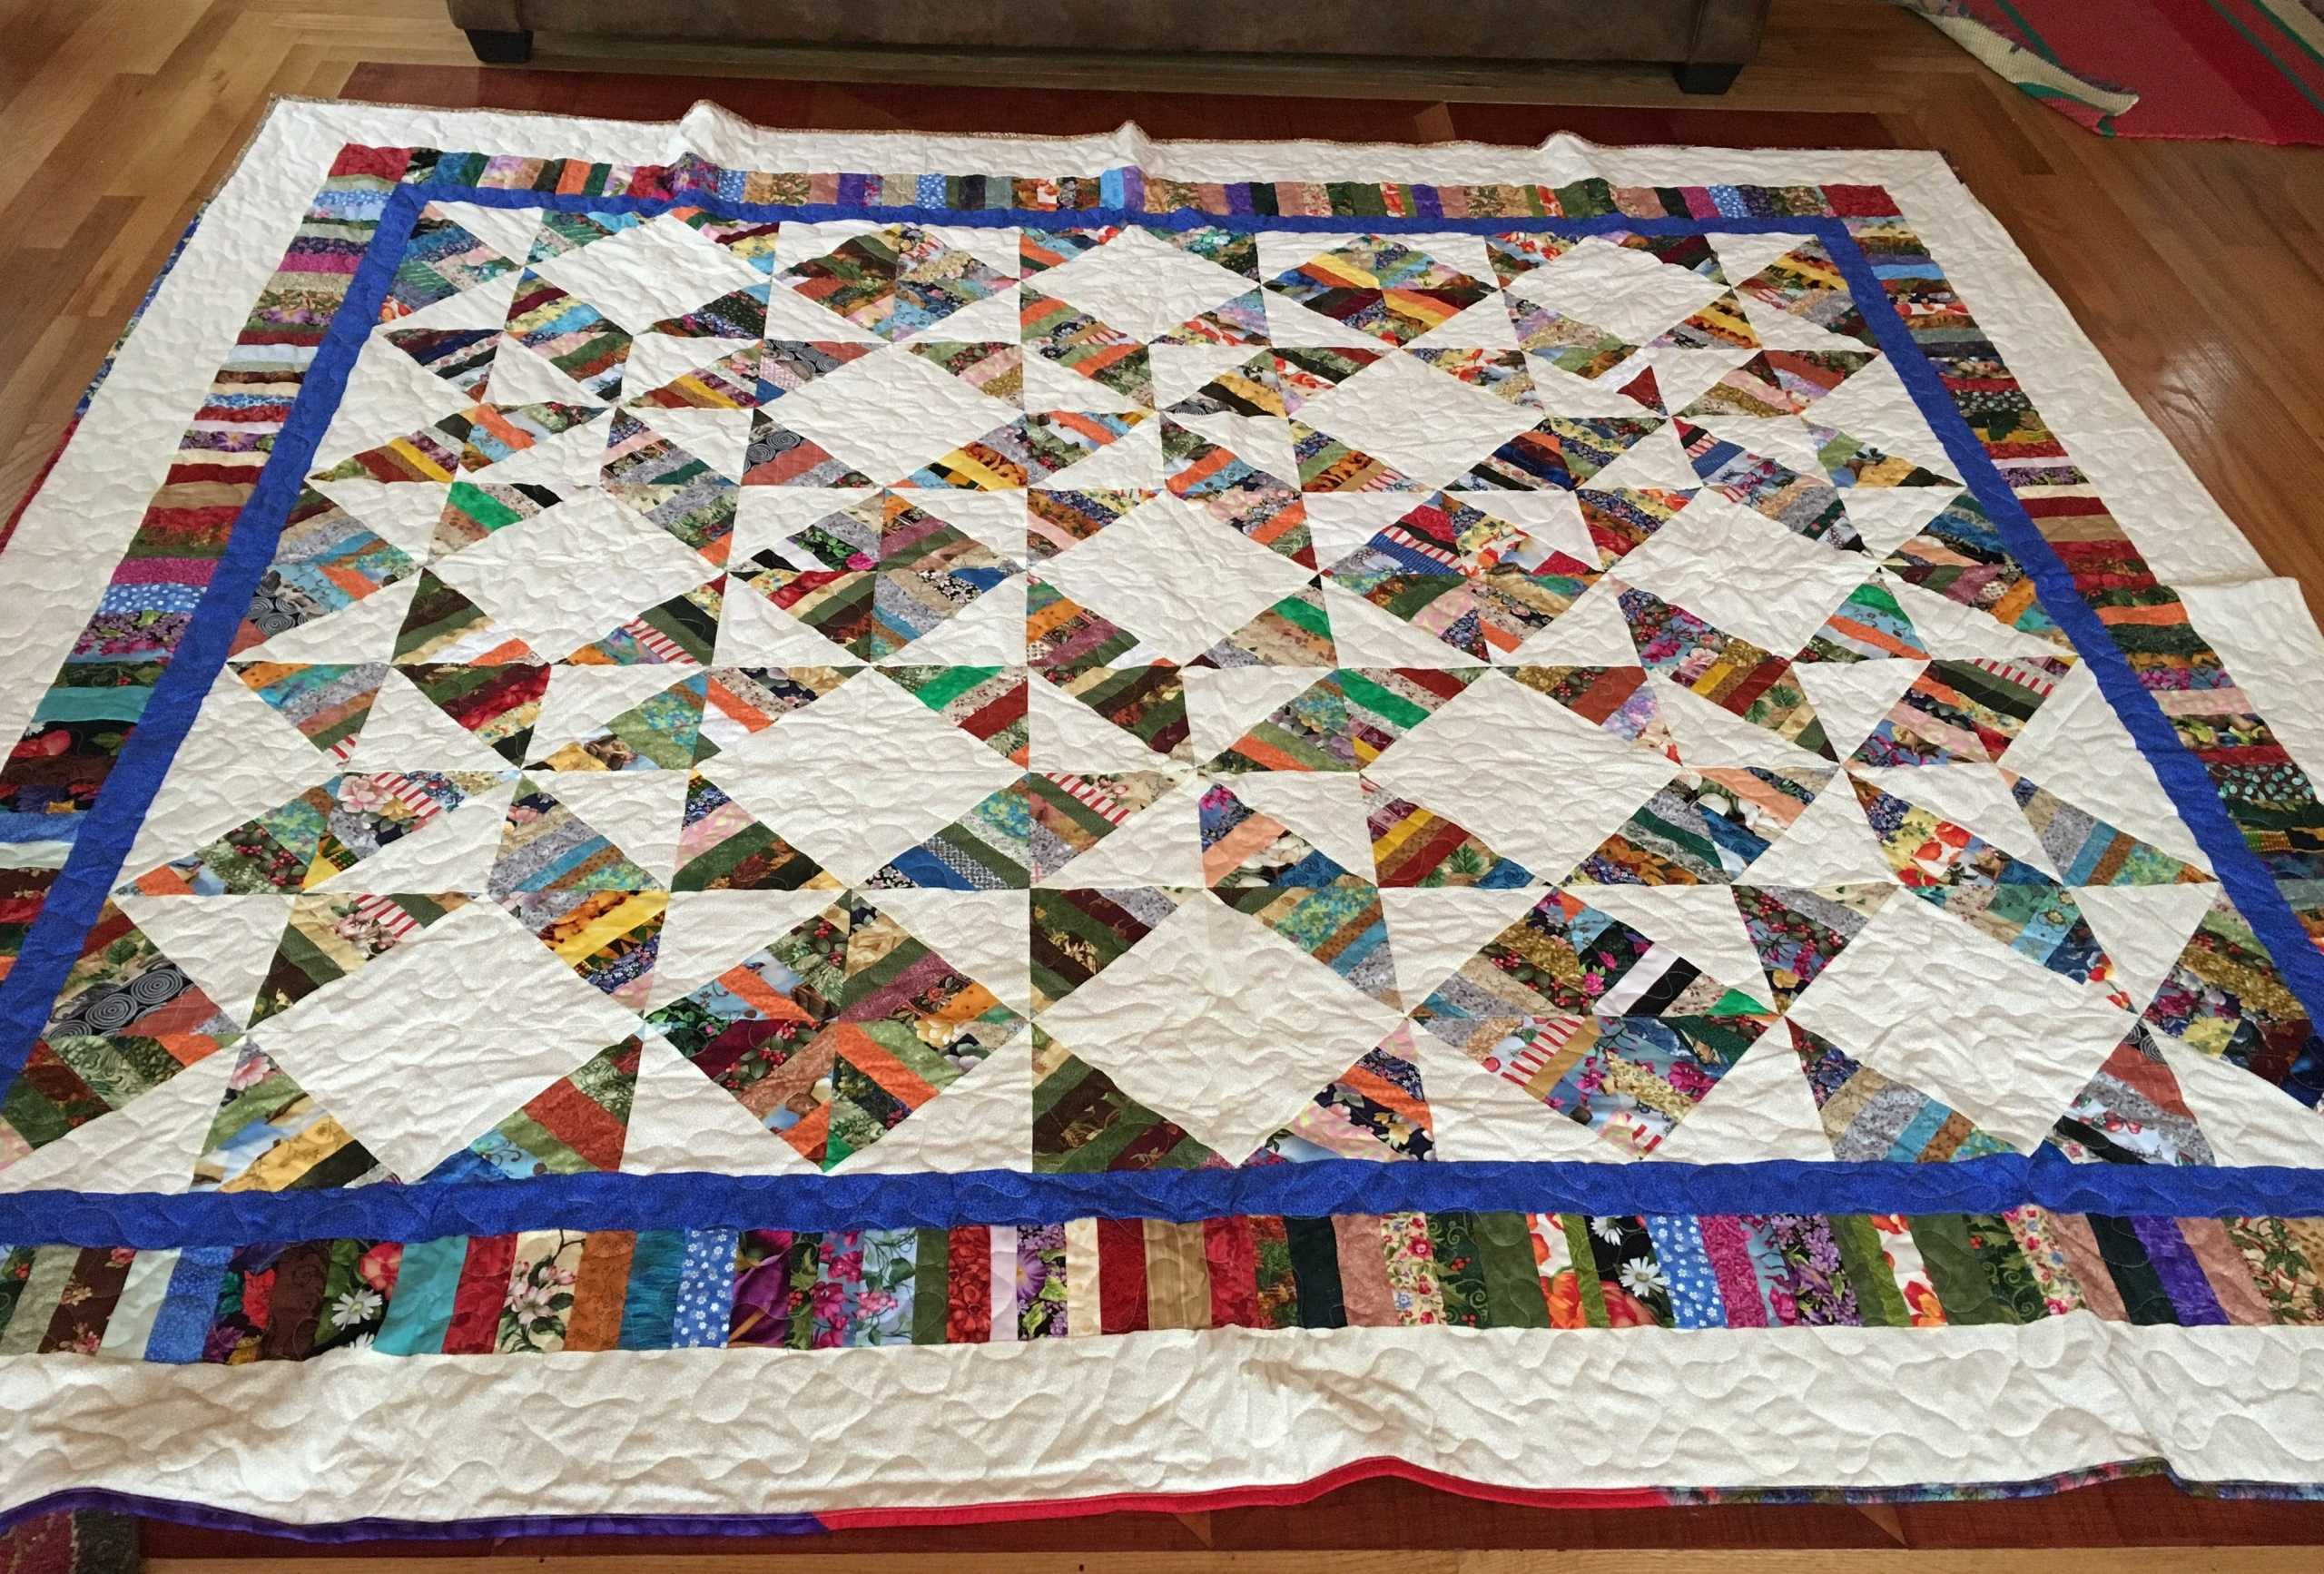 QUEEN SIZE QUILT <br/> Donated by: SUNSHINE QUILTERS OF LAFARGEVILLE <br/> Valued at: $500